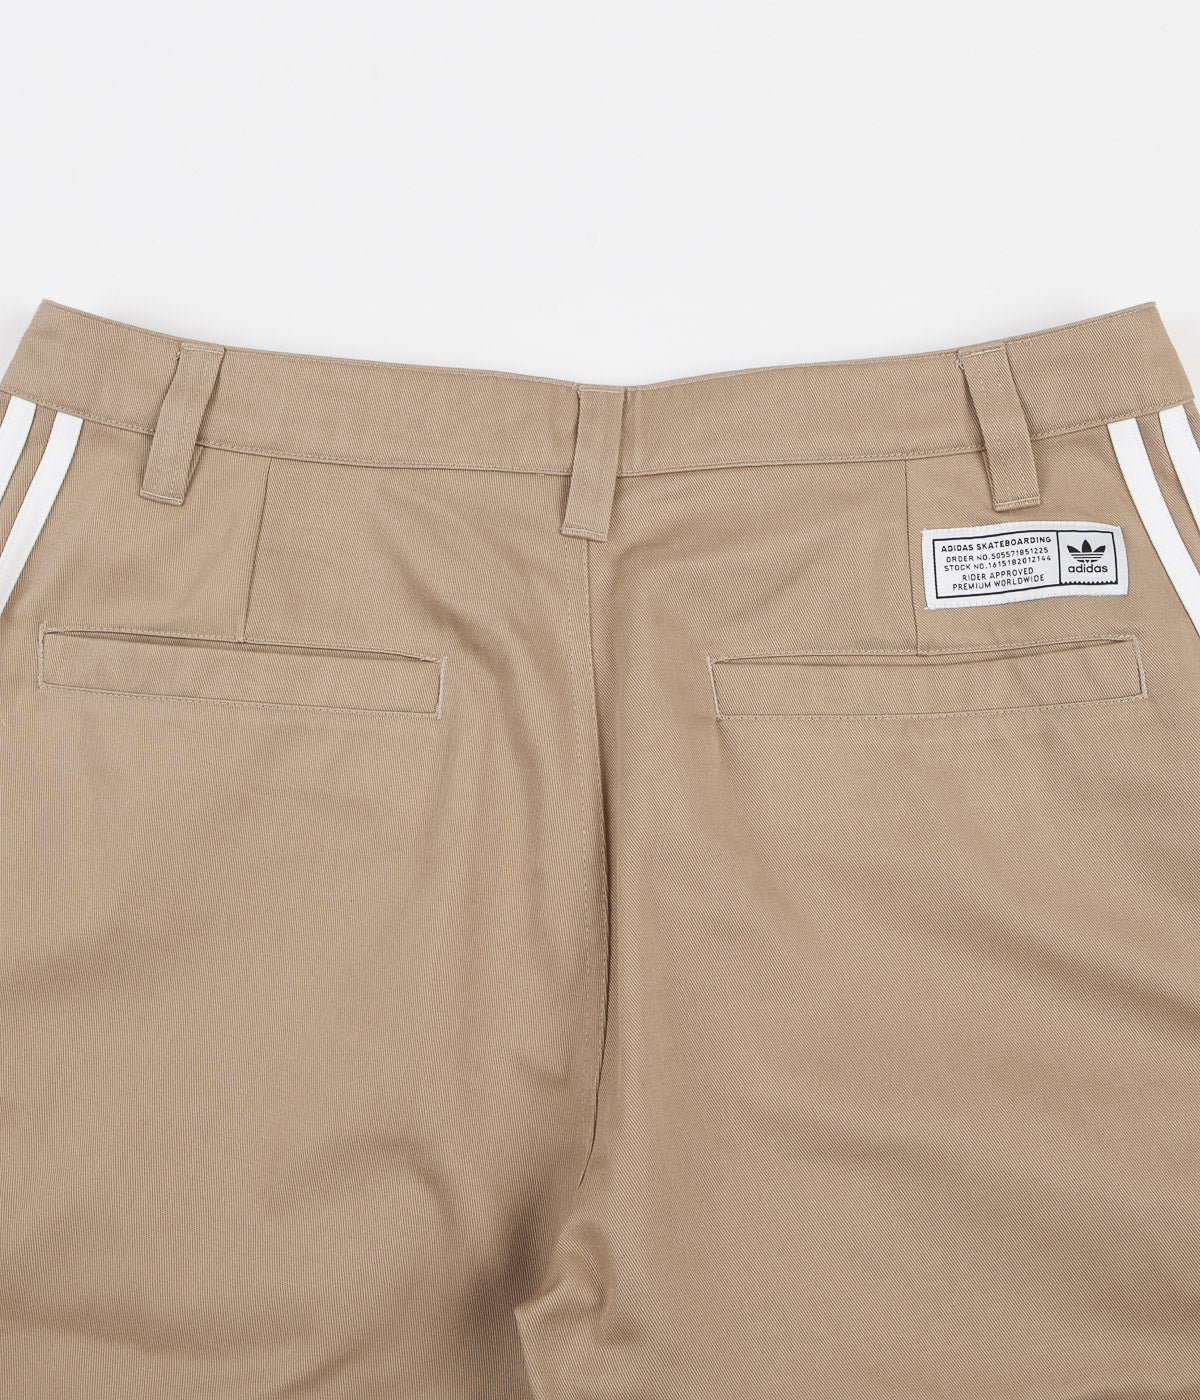 Adidas Striped Chino Pants - Hemp / White